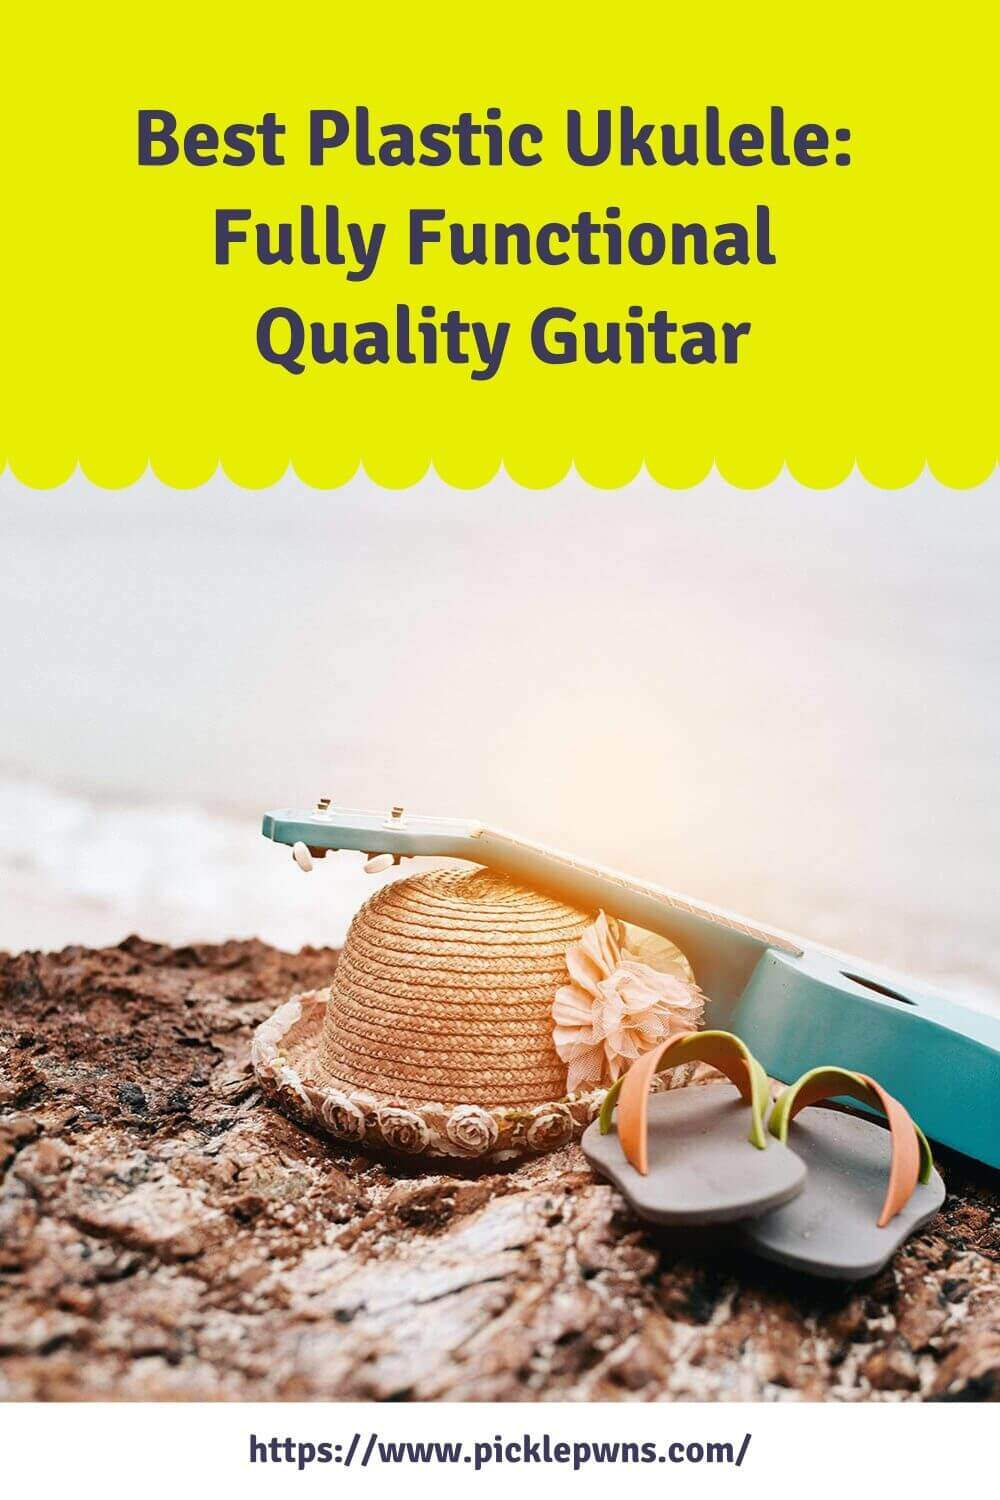 Best Plastic Ukulele 2020 Fully Functional Quality Guitar